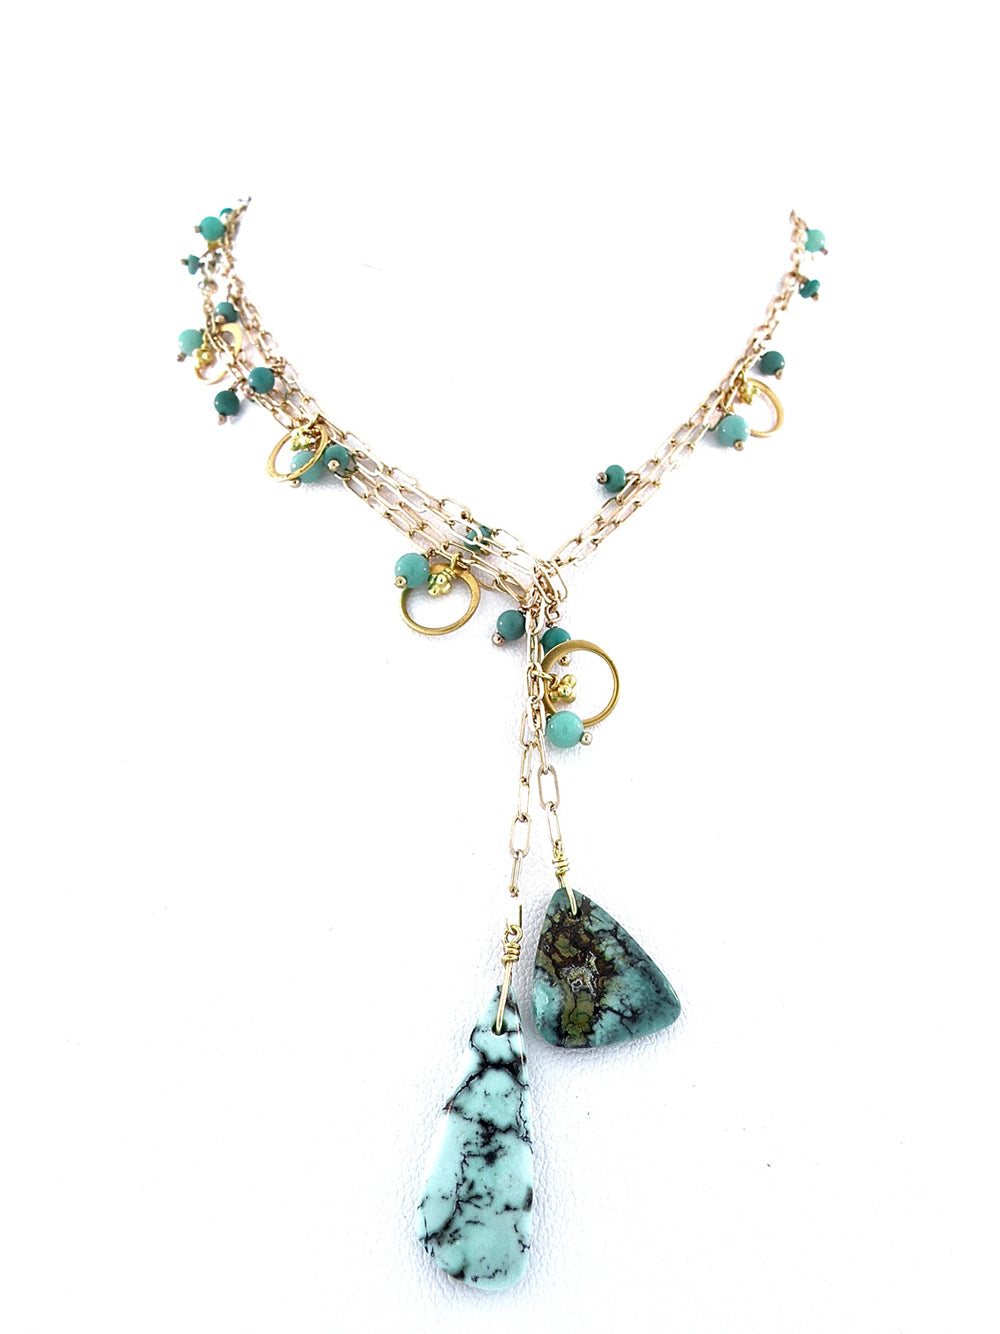 Raindance Adornment Necklace - Dana Busch Designs